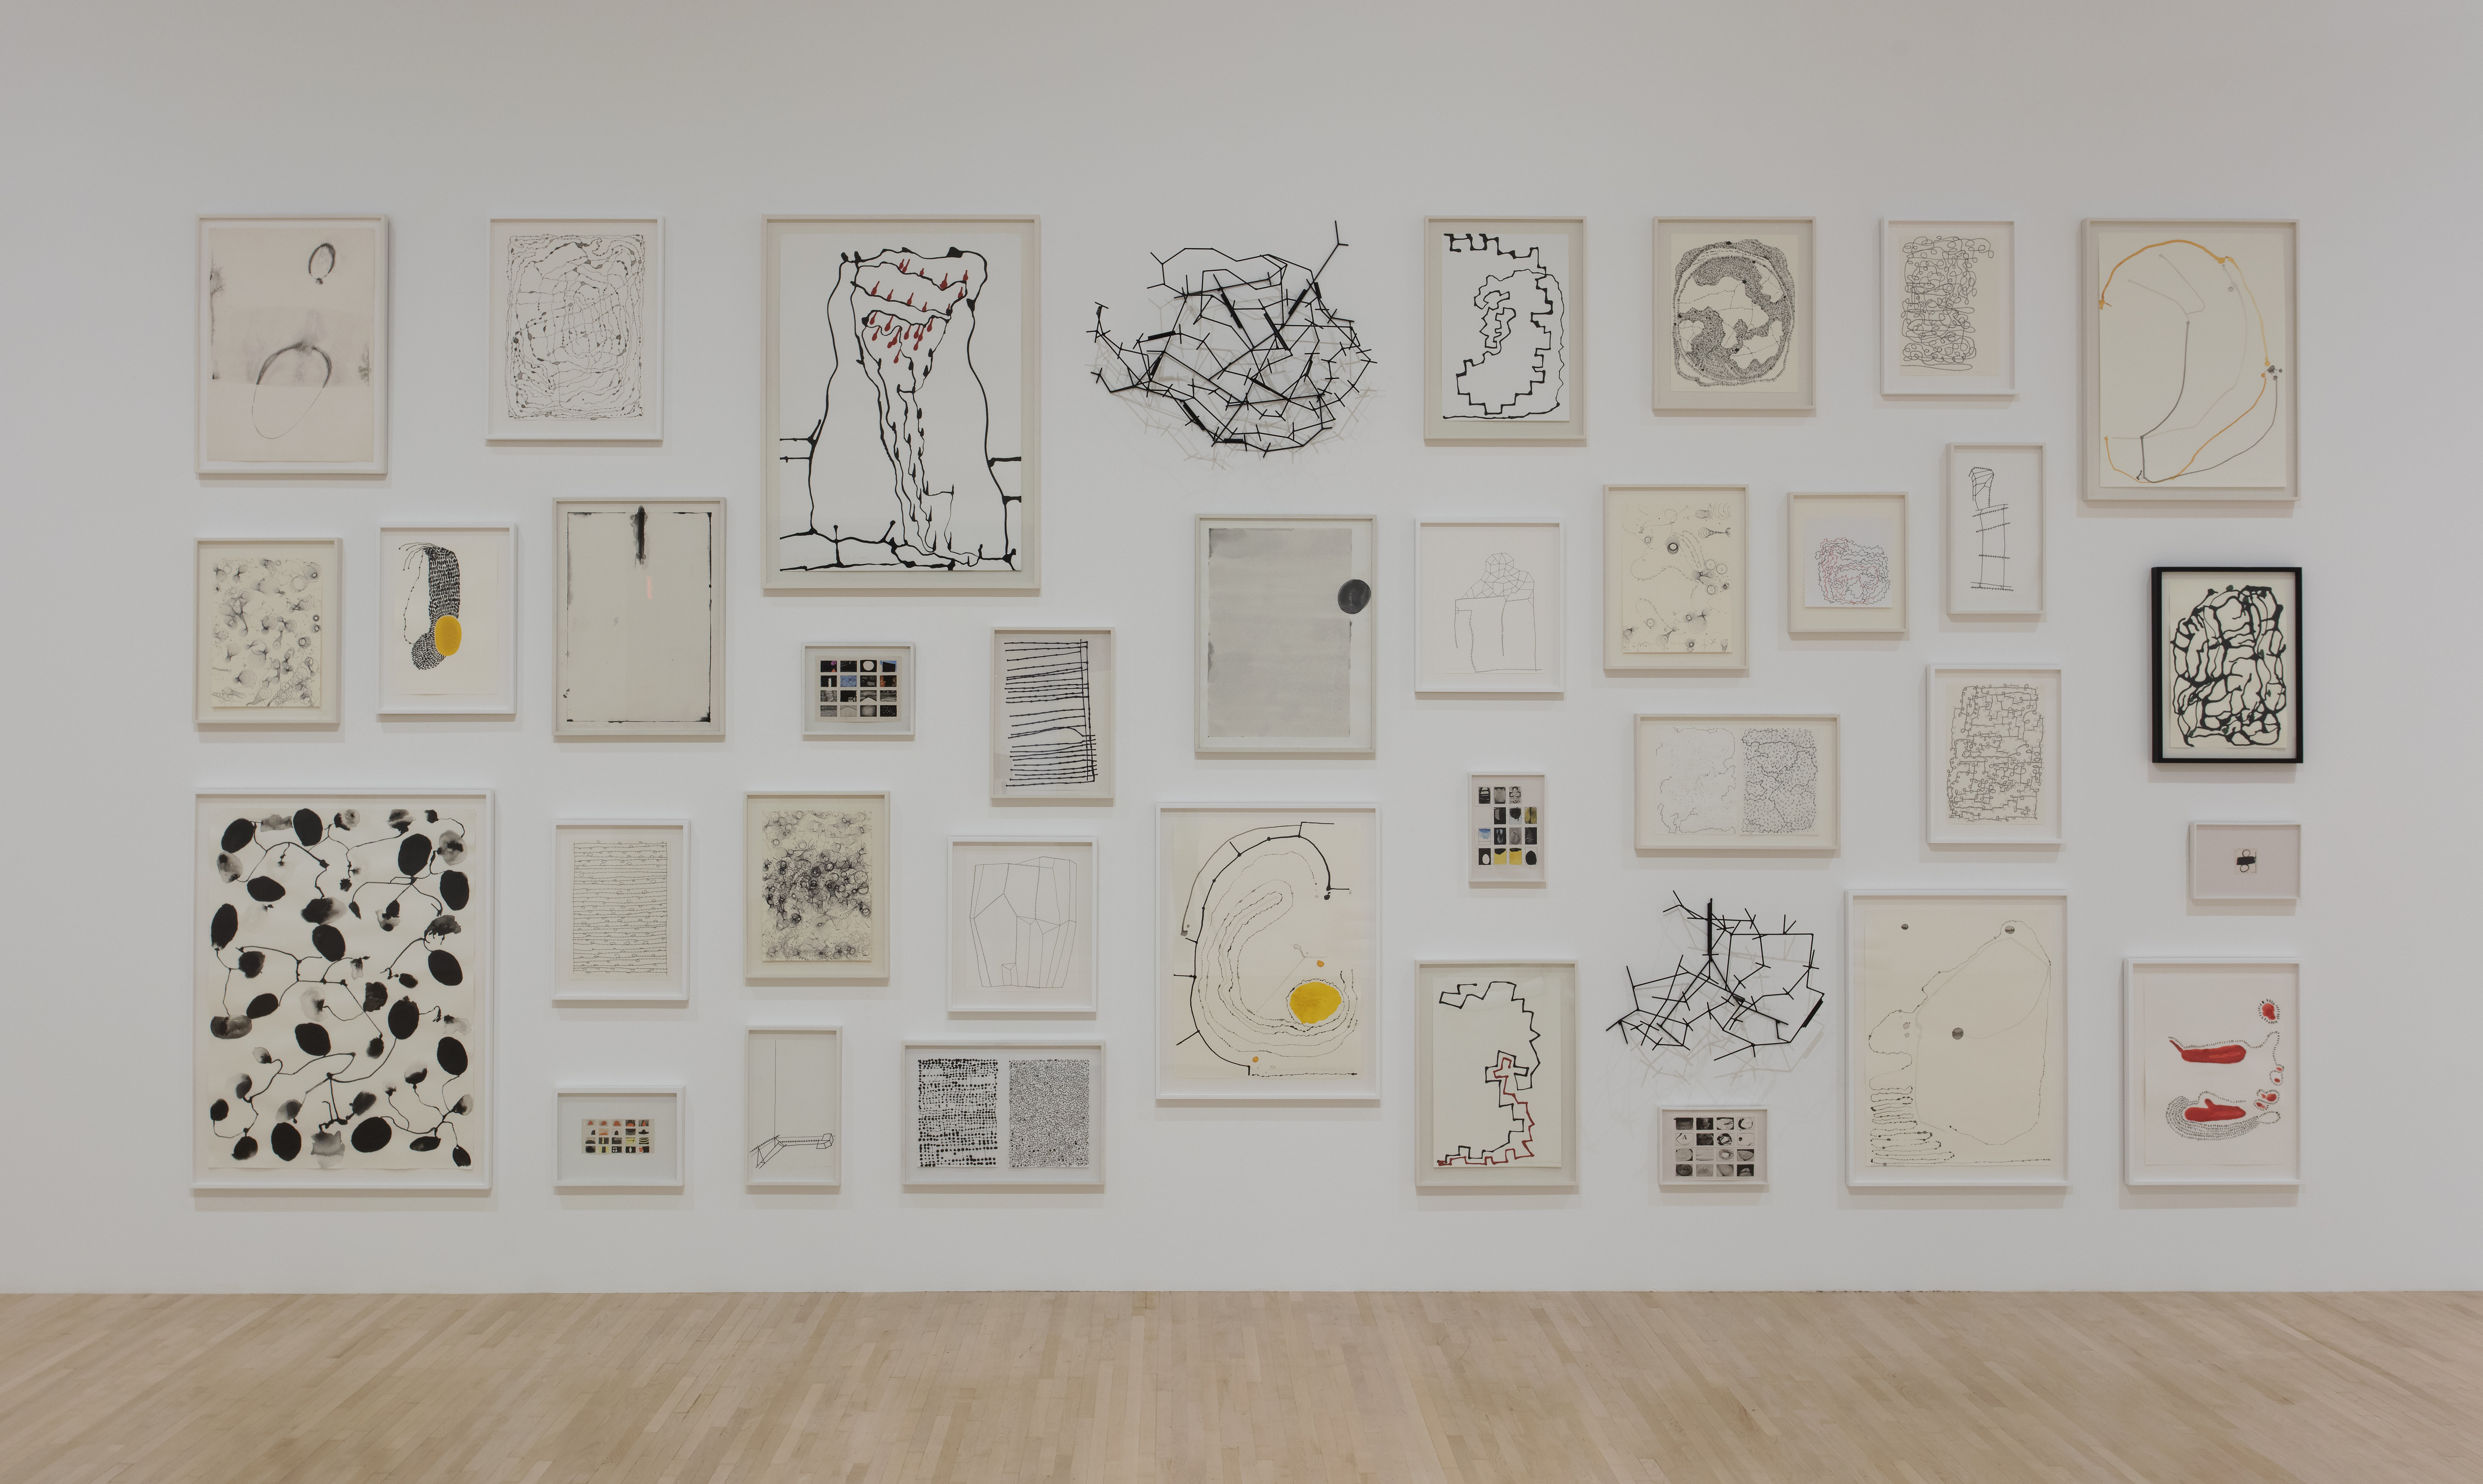 Installation view of Anna Maria Maiolino, August 4– December 31, 2017 at MOCA Grand Avenue, courtesy of The Museum of Contemporary Art, Los Angeles, photo by Brian Forrest.